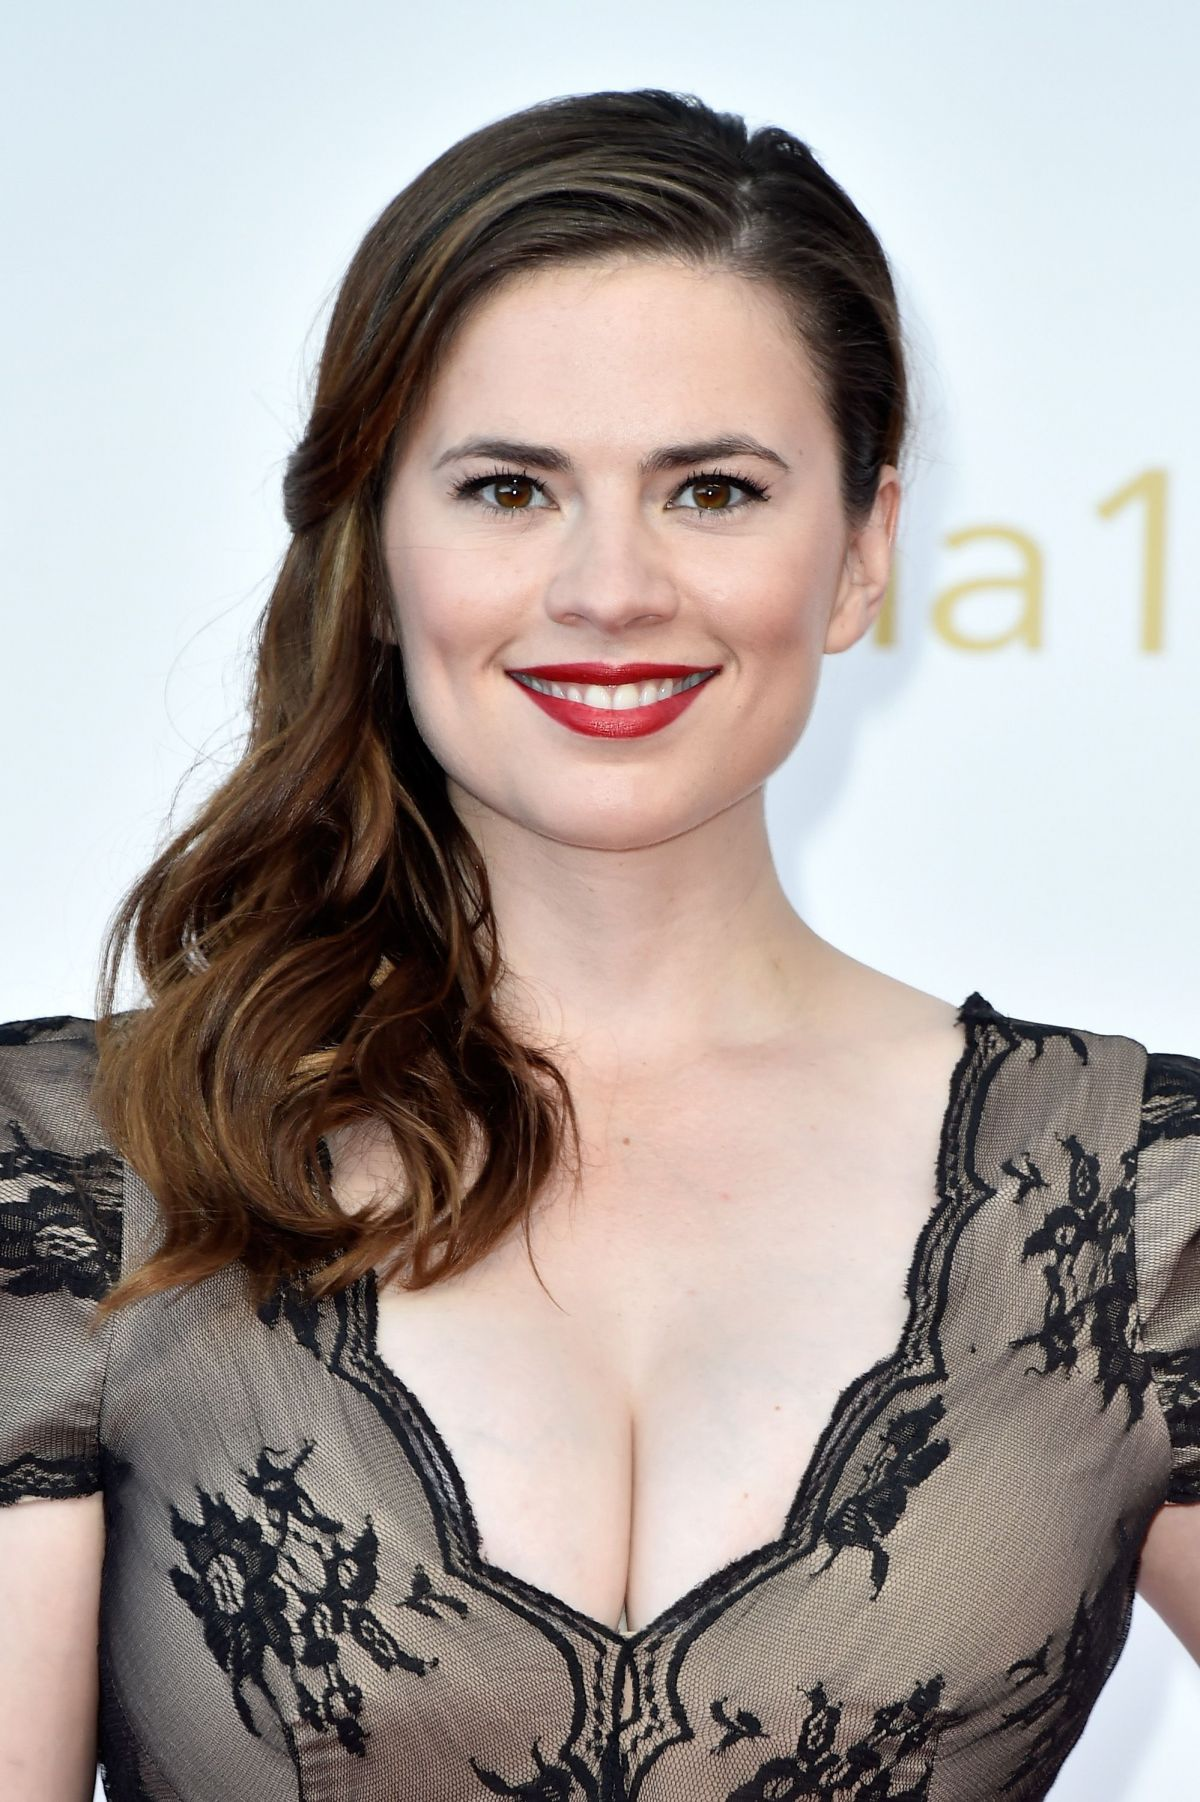 Hayley Atwell To Star In New ABC Drama ~ What'cha Reading?